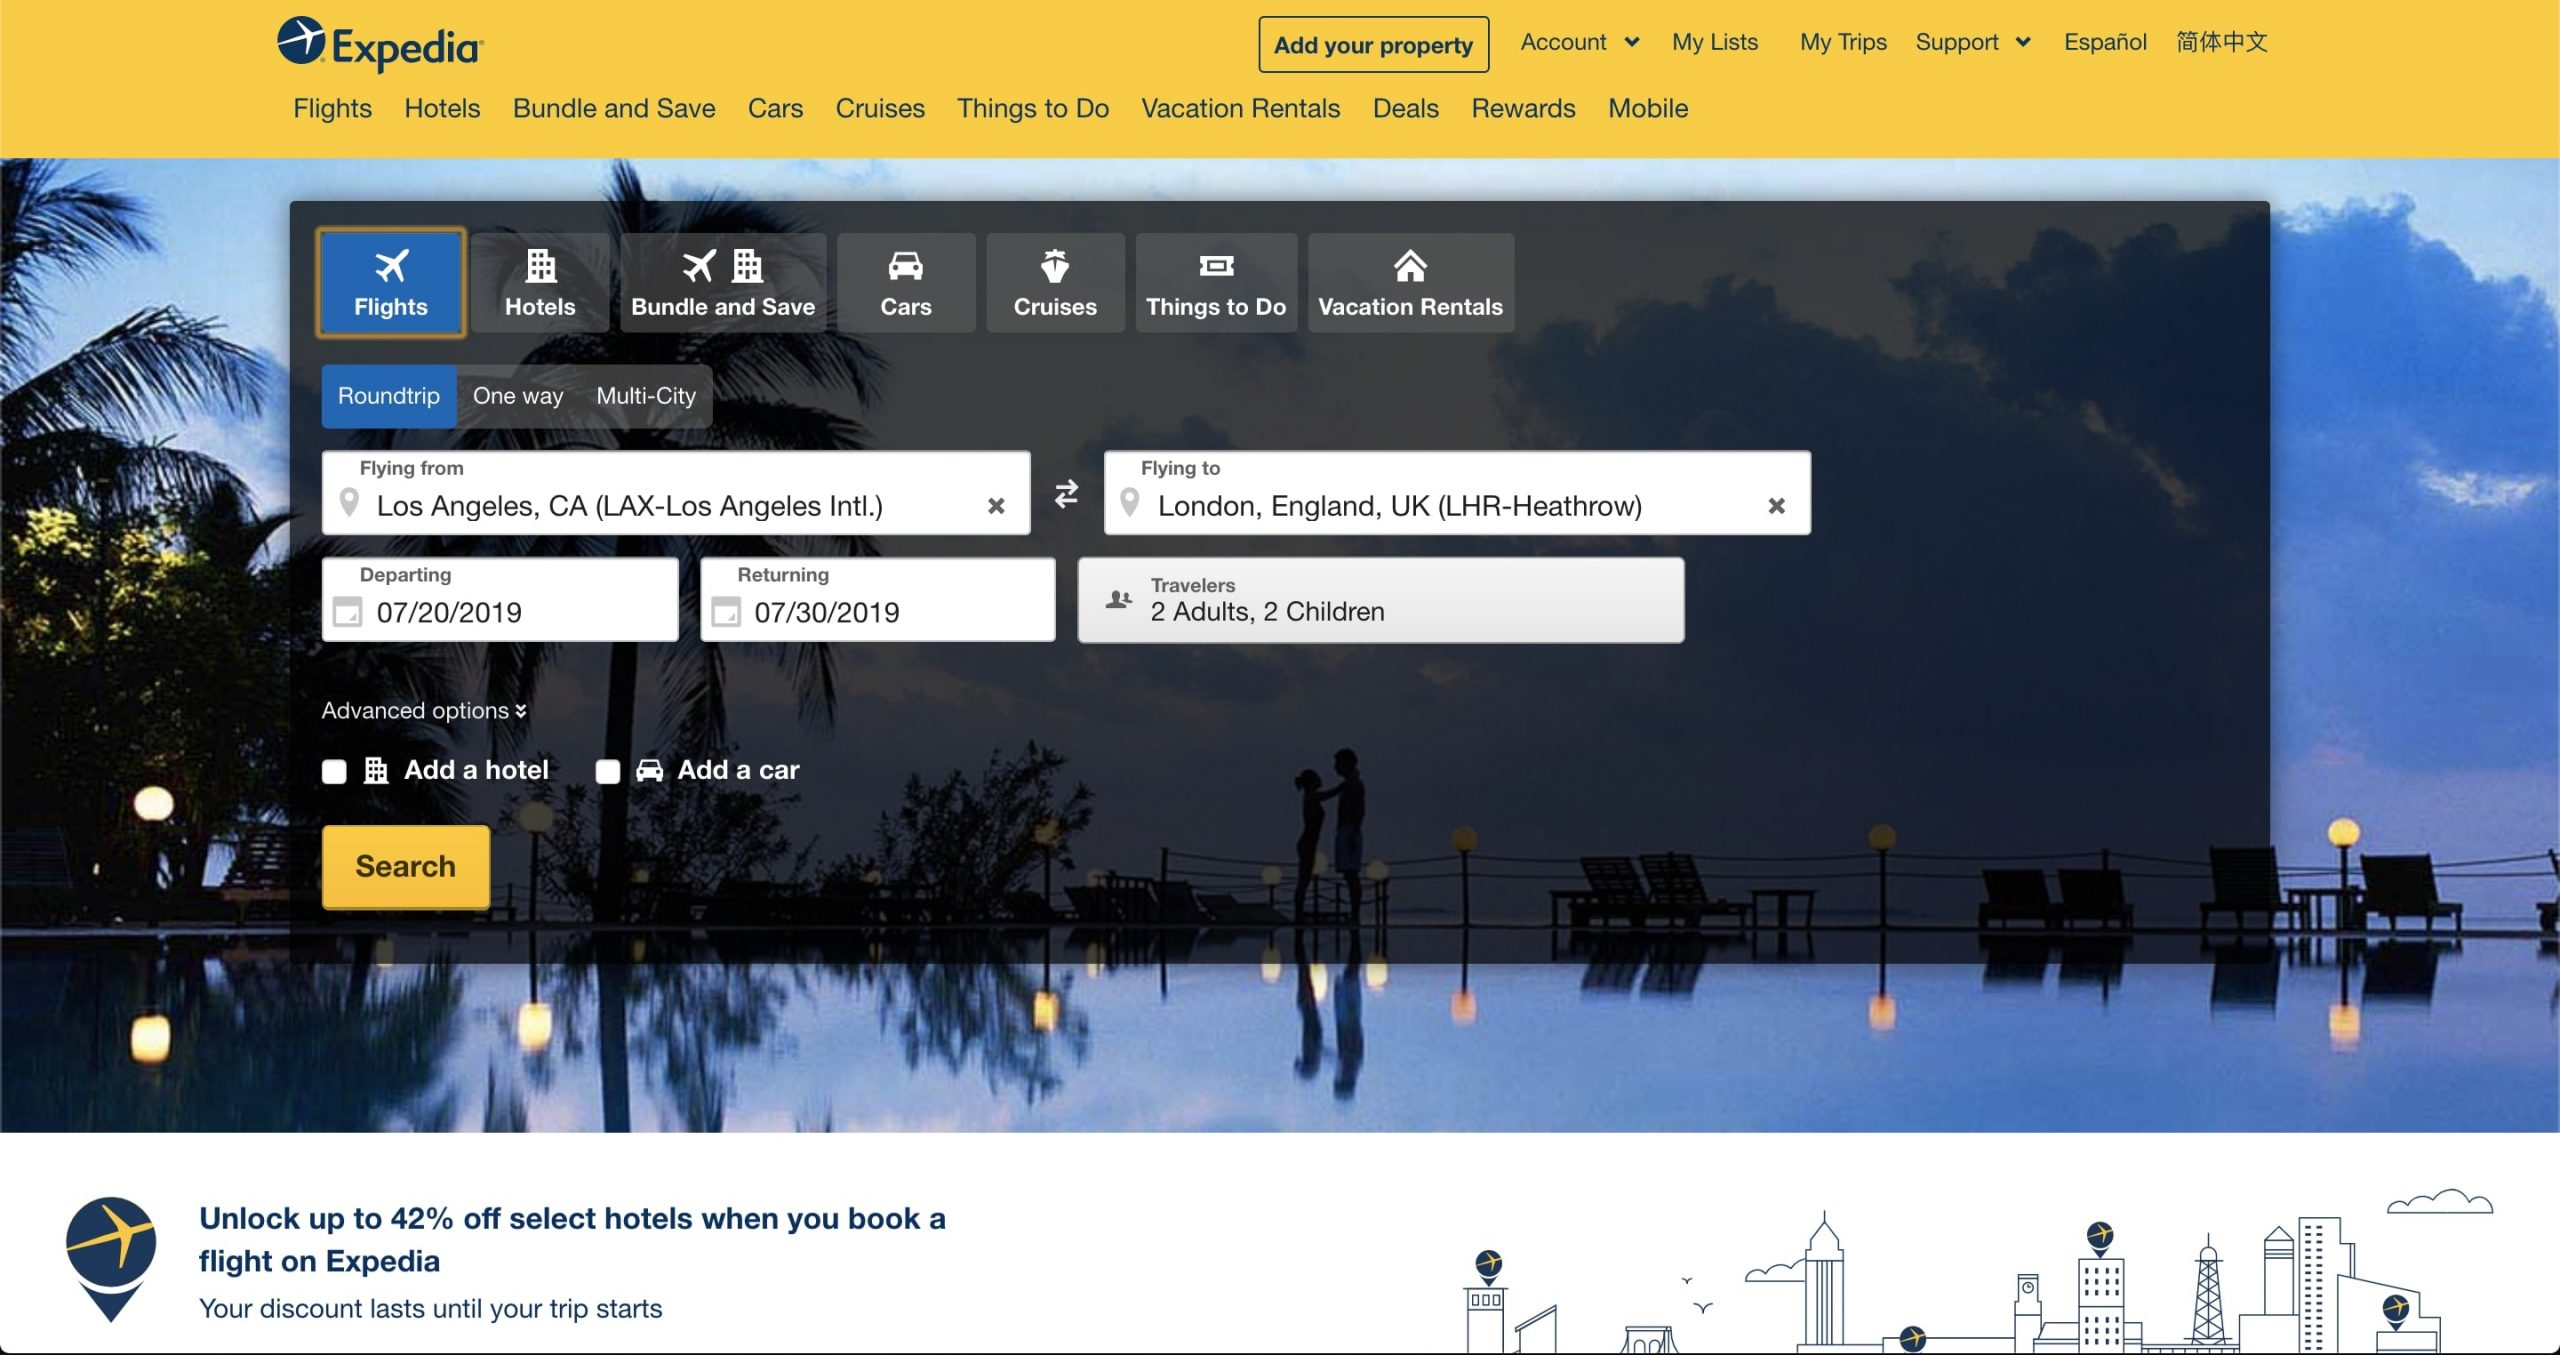 Expedia booking engine search page